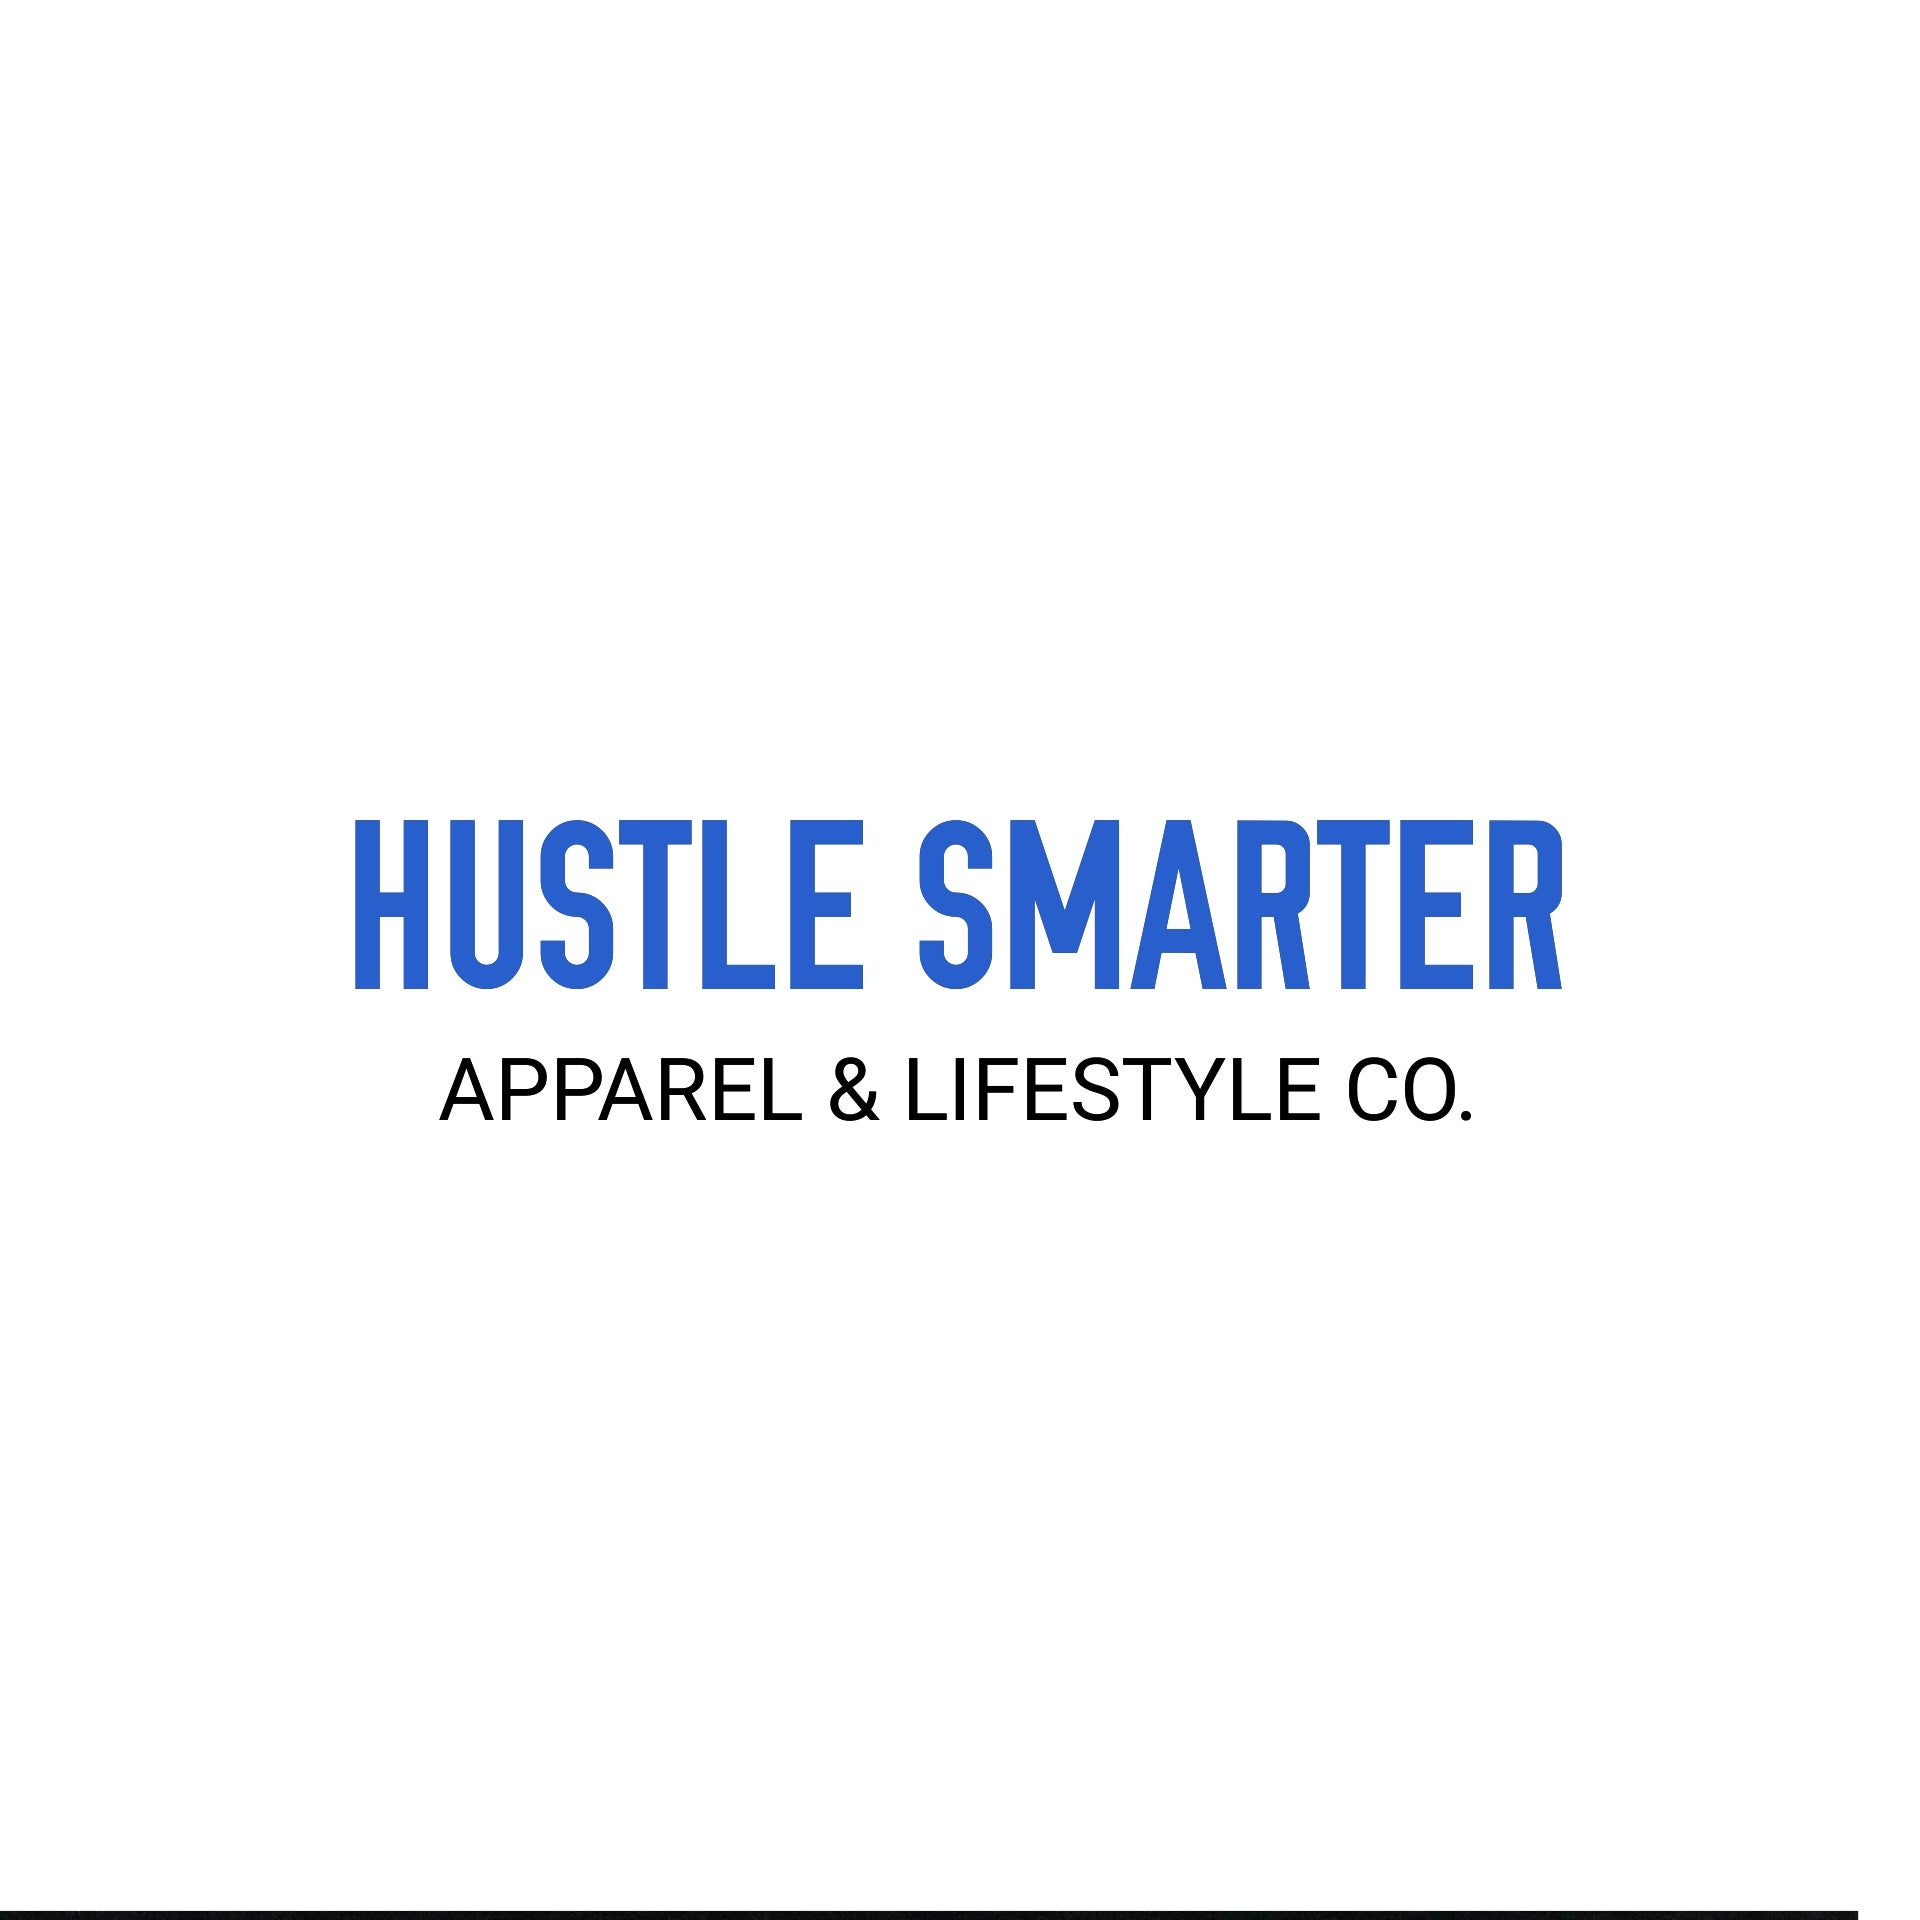 Hustle Smarter Apparel